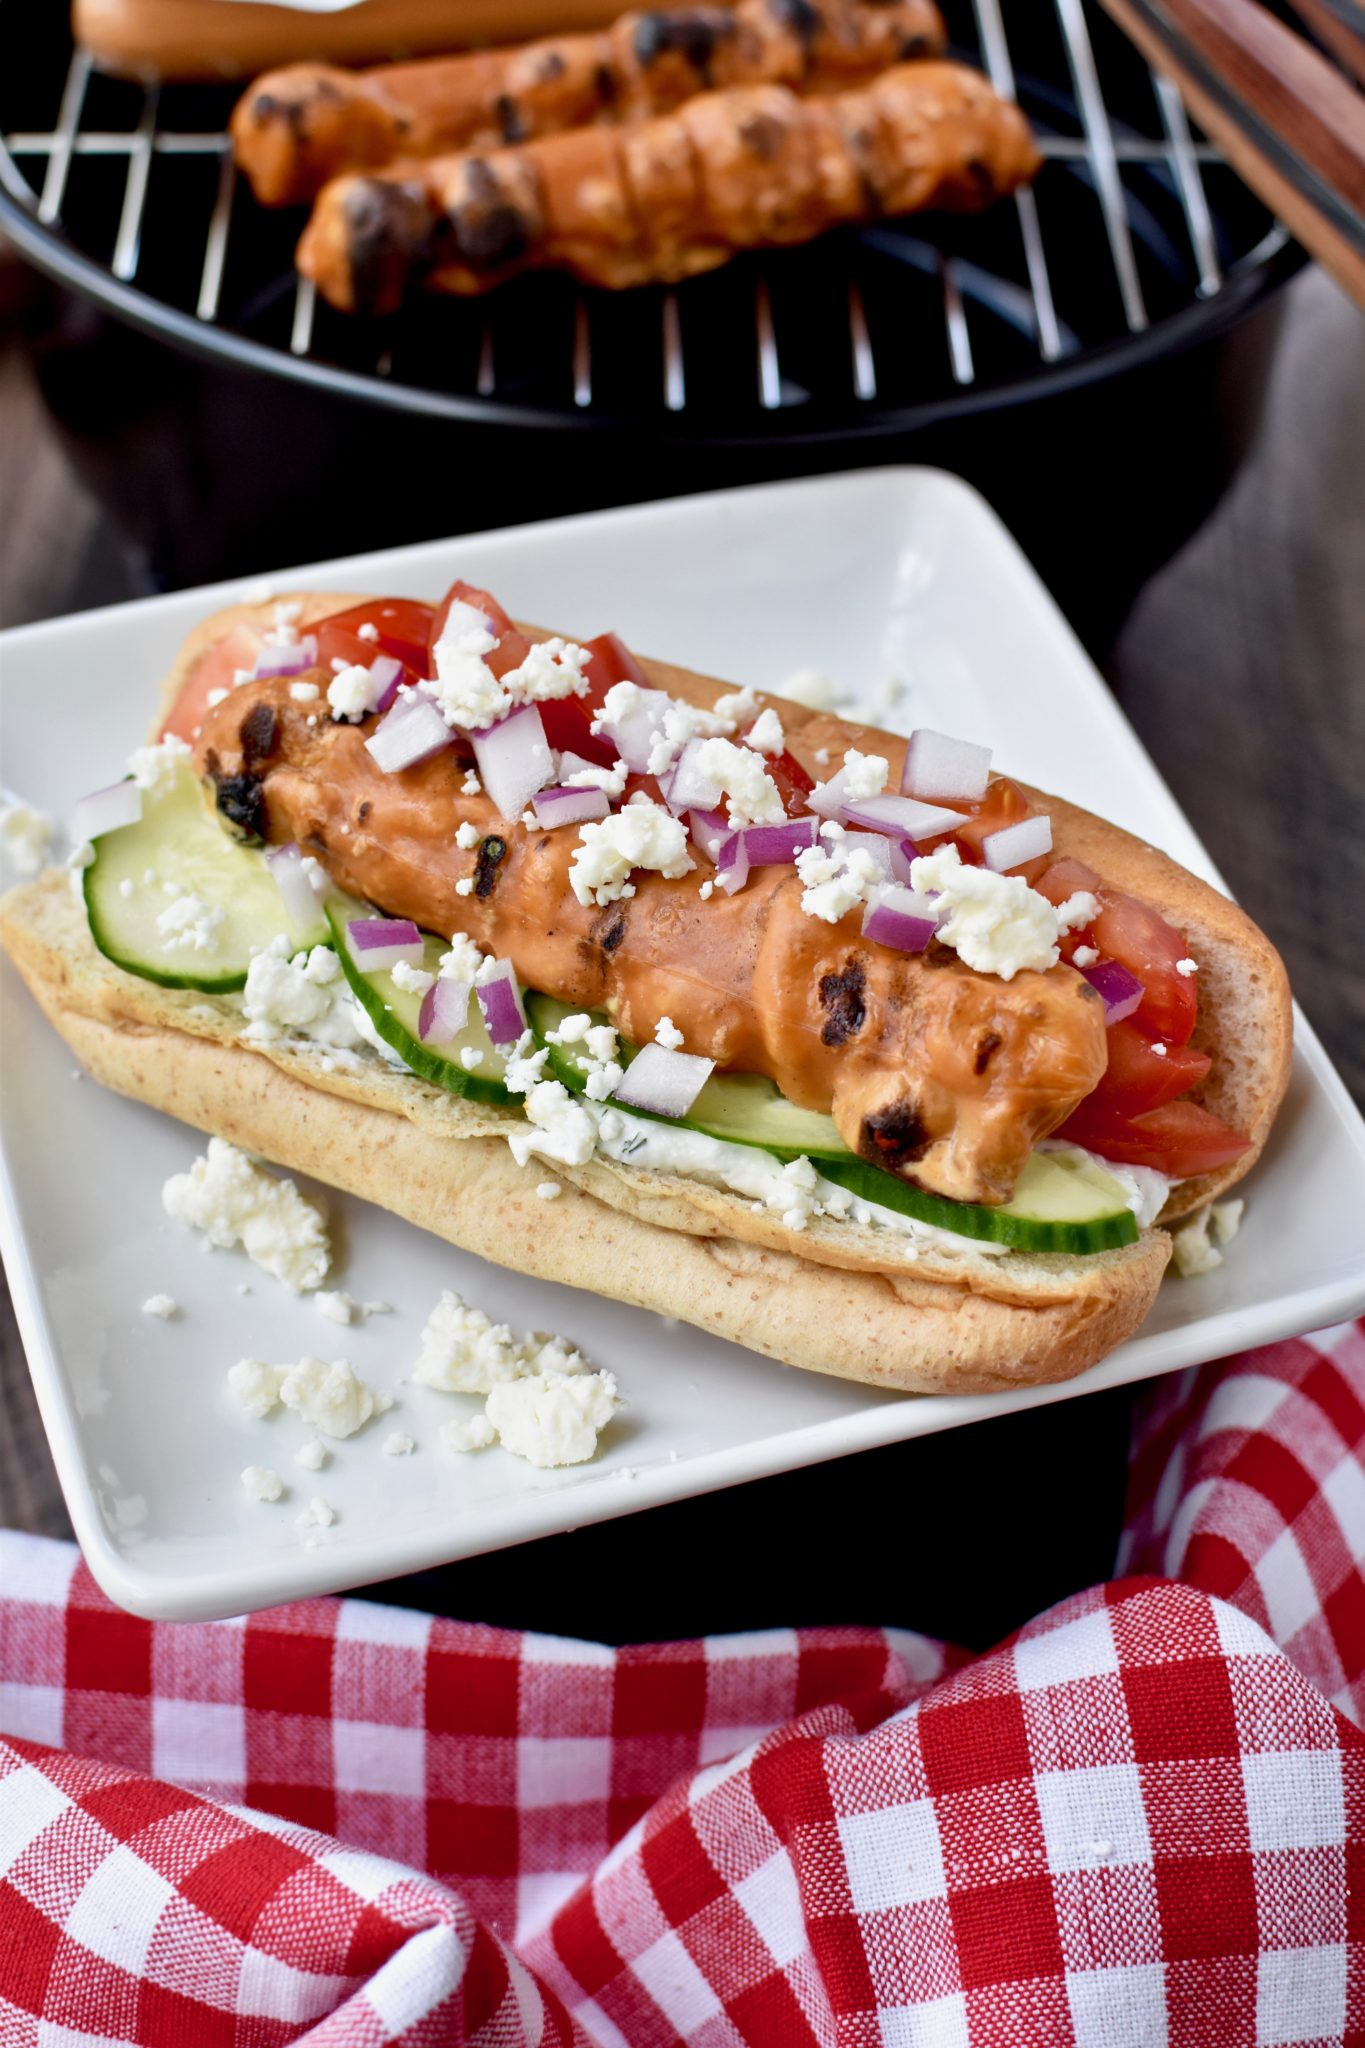 grilling season is here and i'm bringing you 3 fun ways to jazz up veggie dogs! // cait's plate